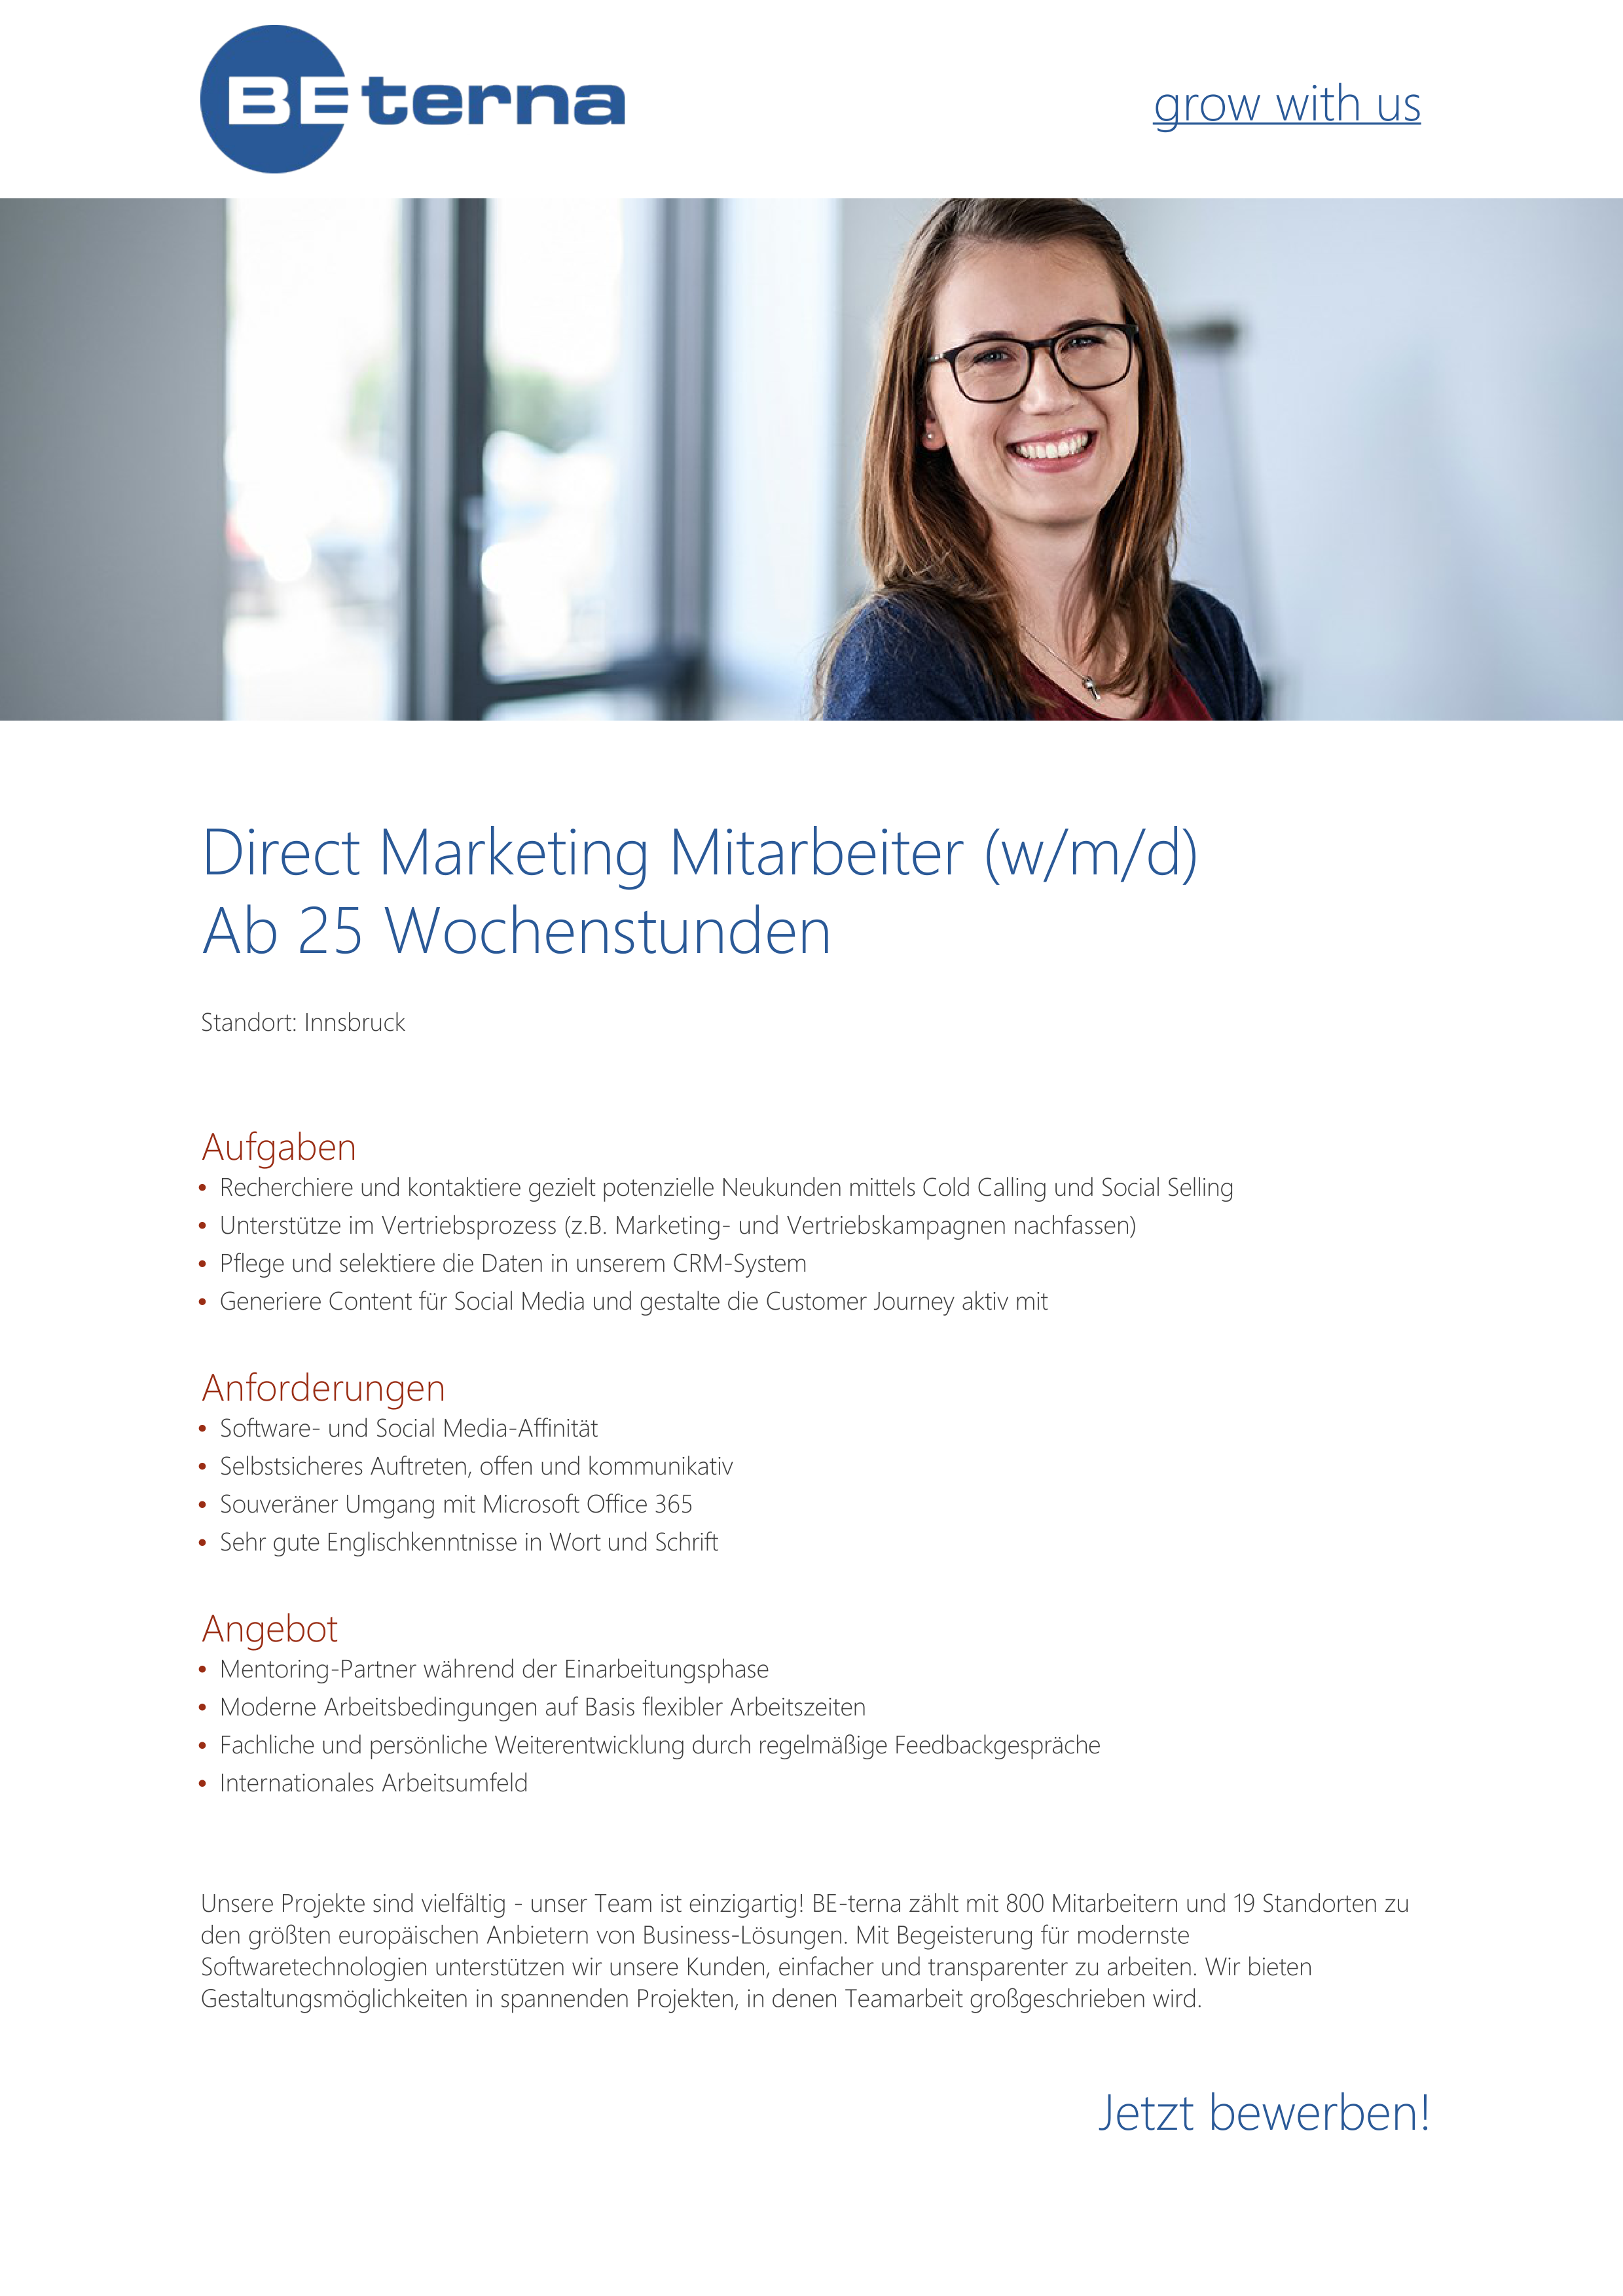 Direct Marketing Mitarbeiter (w/m/d), Ab 25 Wochenstunden